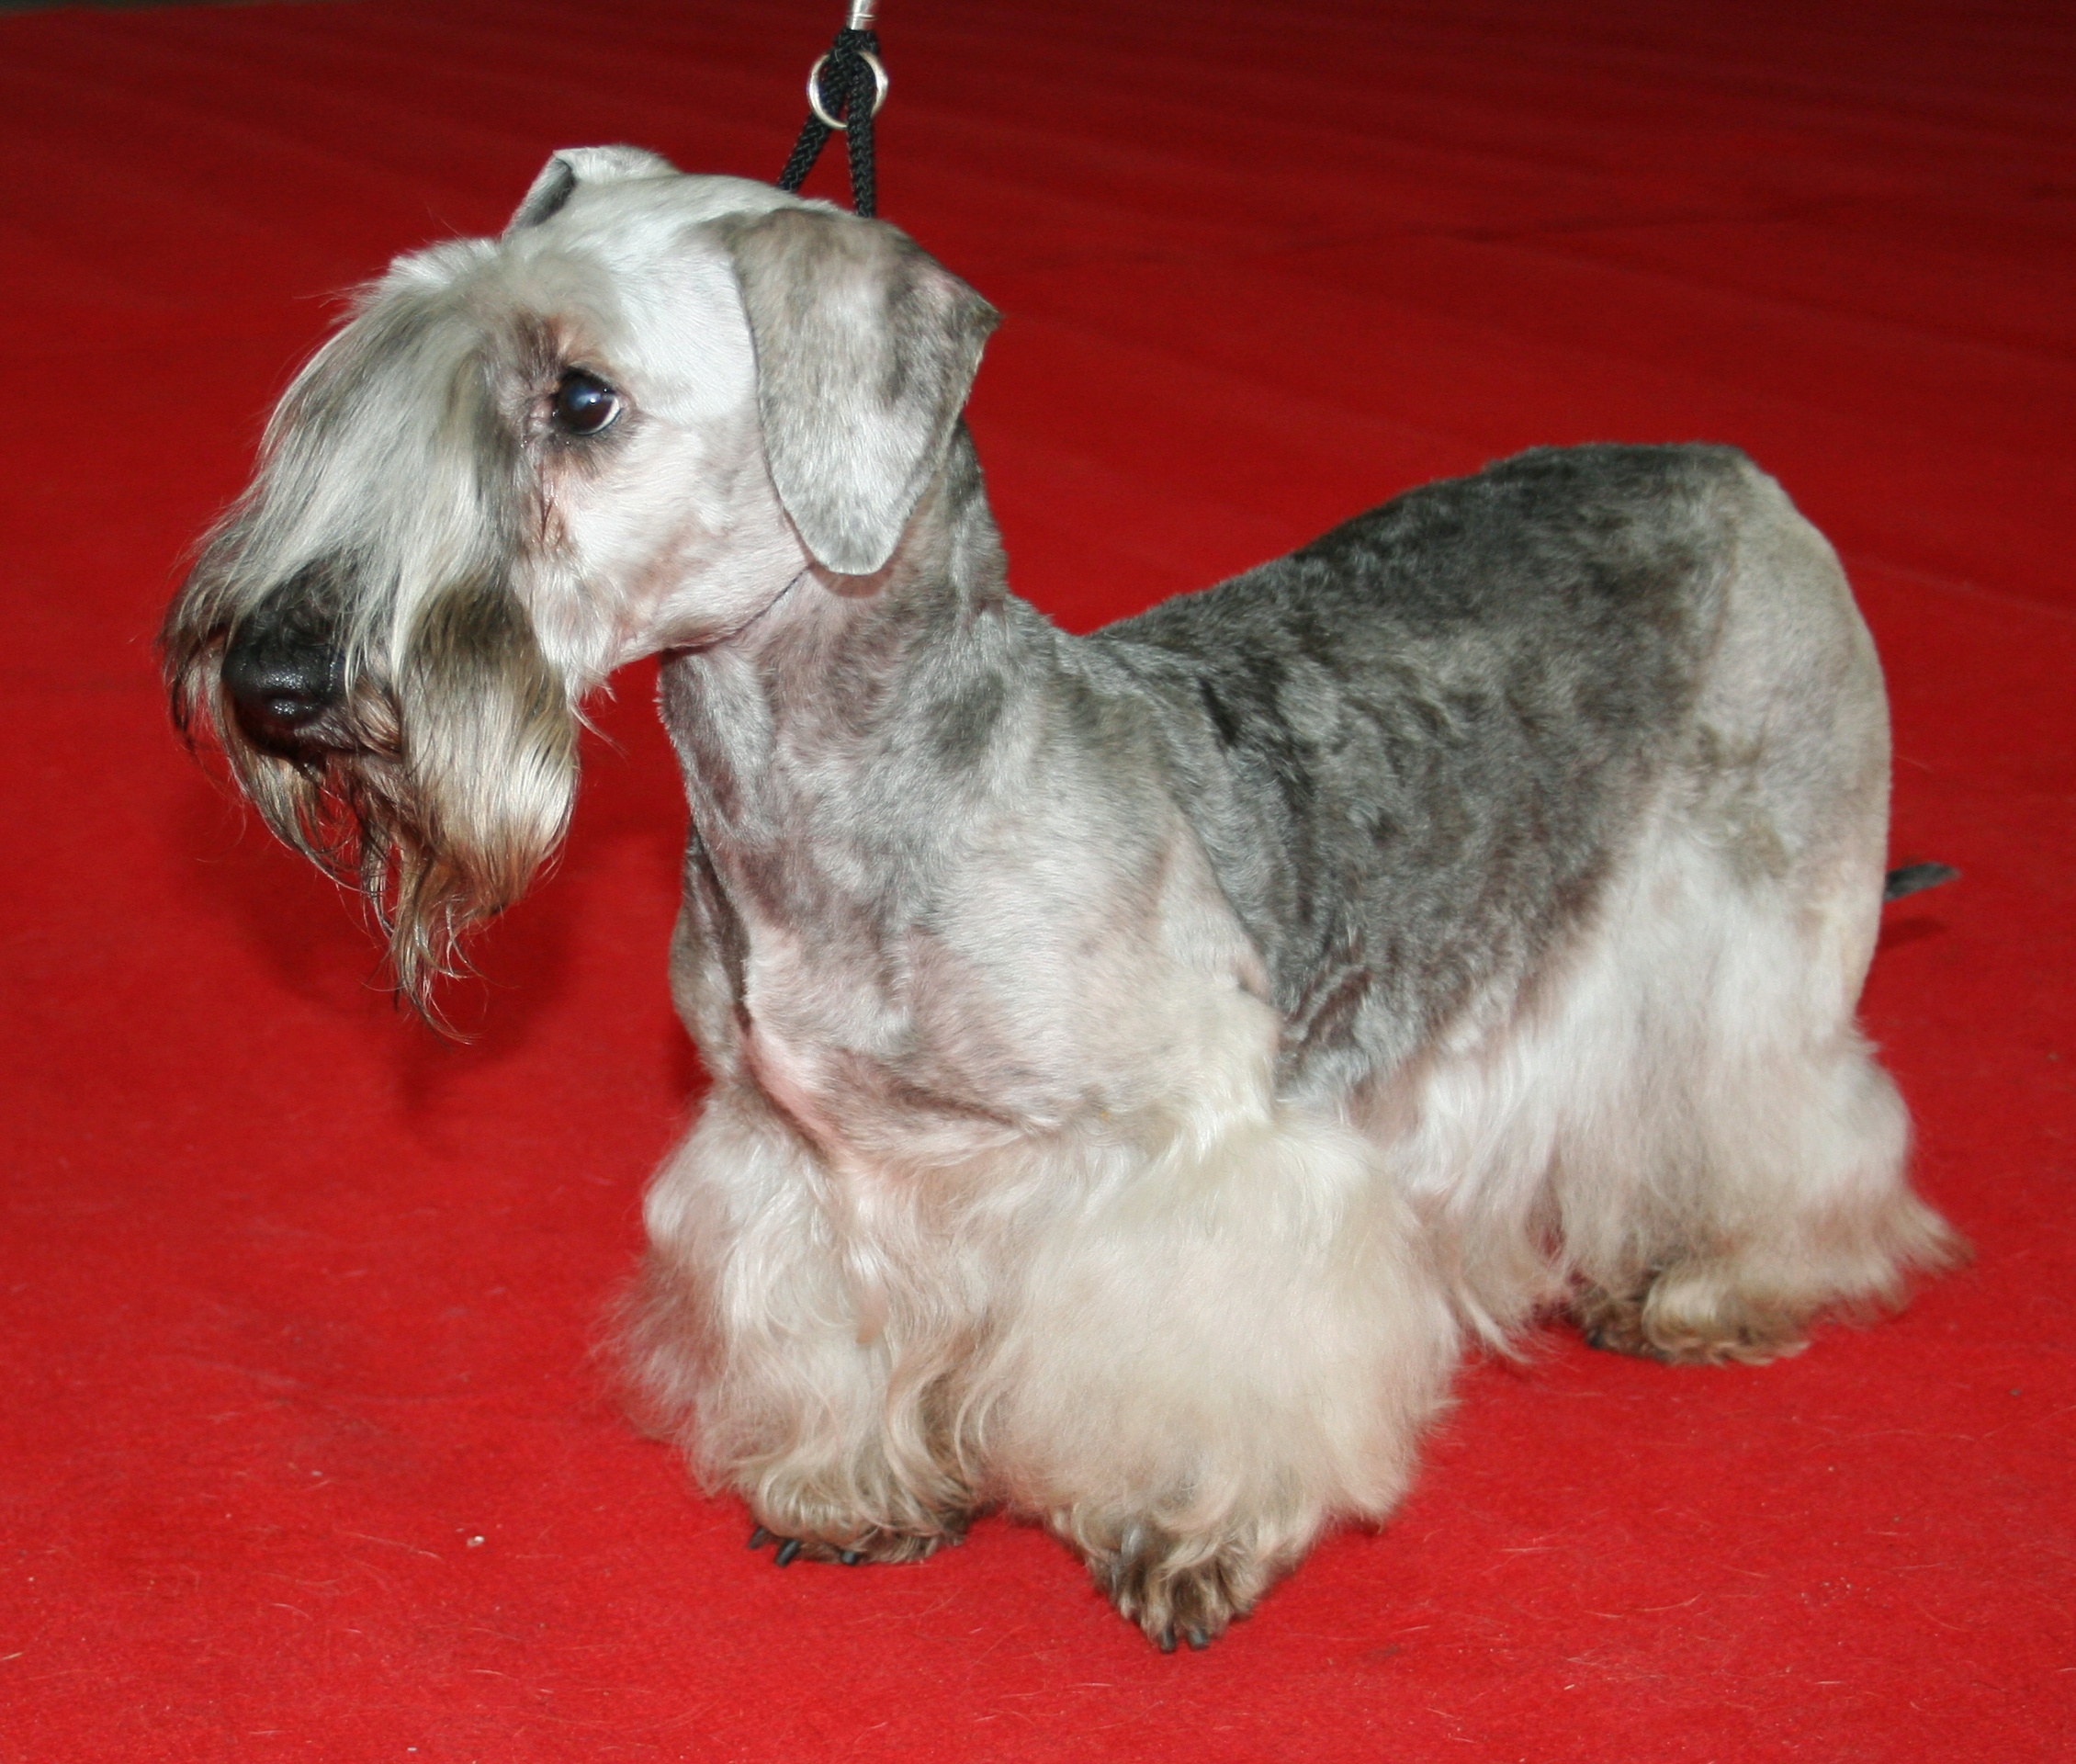 Cesky Terrier, Picture Of Array : Cesky Terrier   Wikipedia, The Free Encyclopedia: Cesky Terrier   Wikipedia, the free encyclopedia